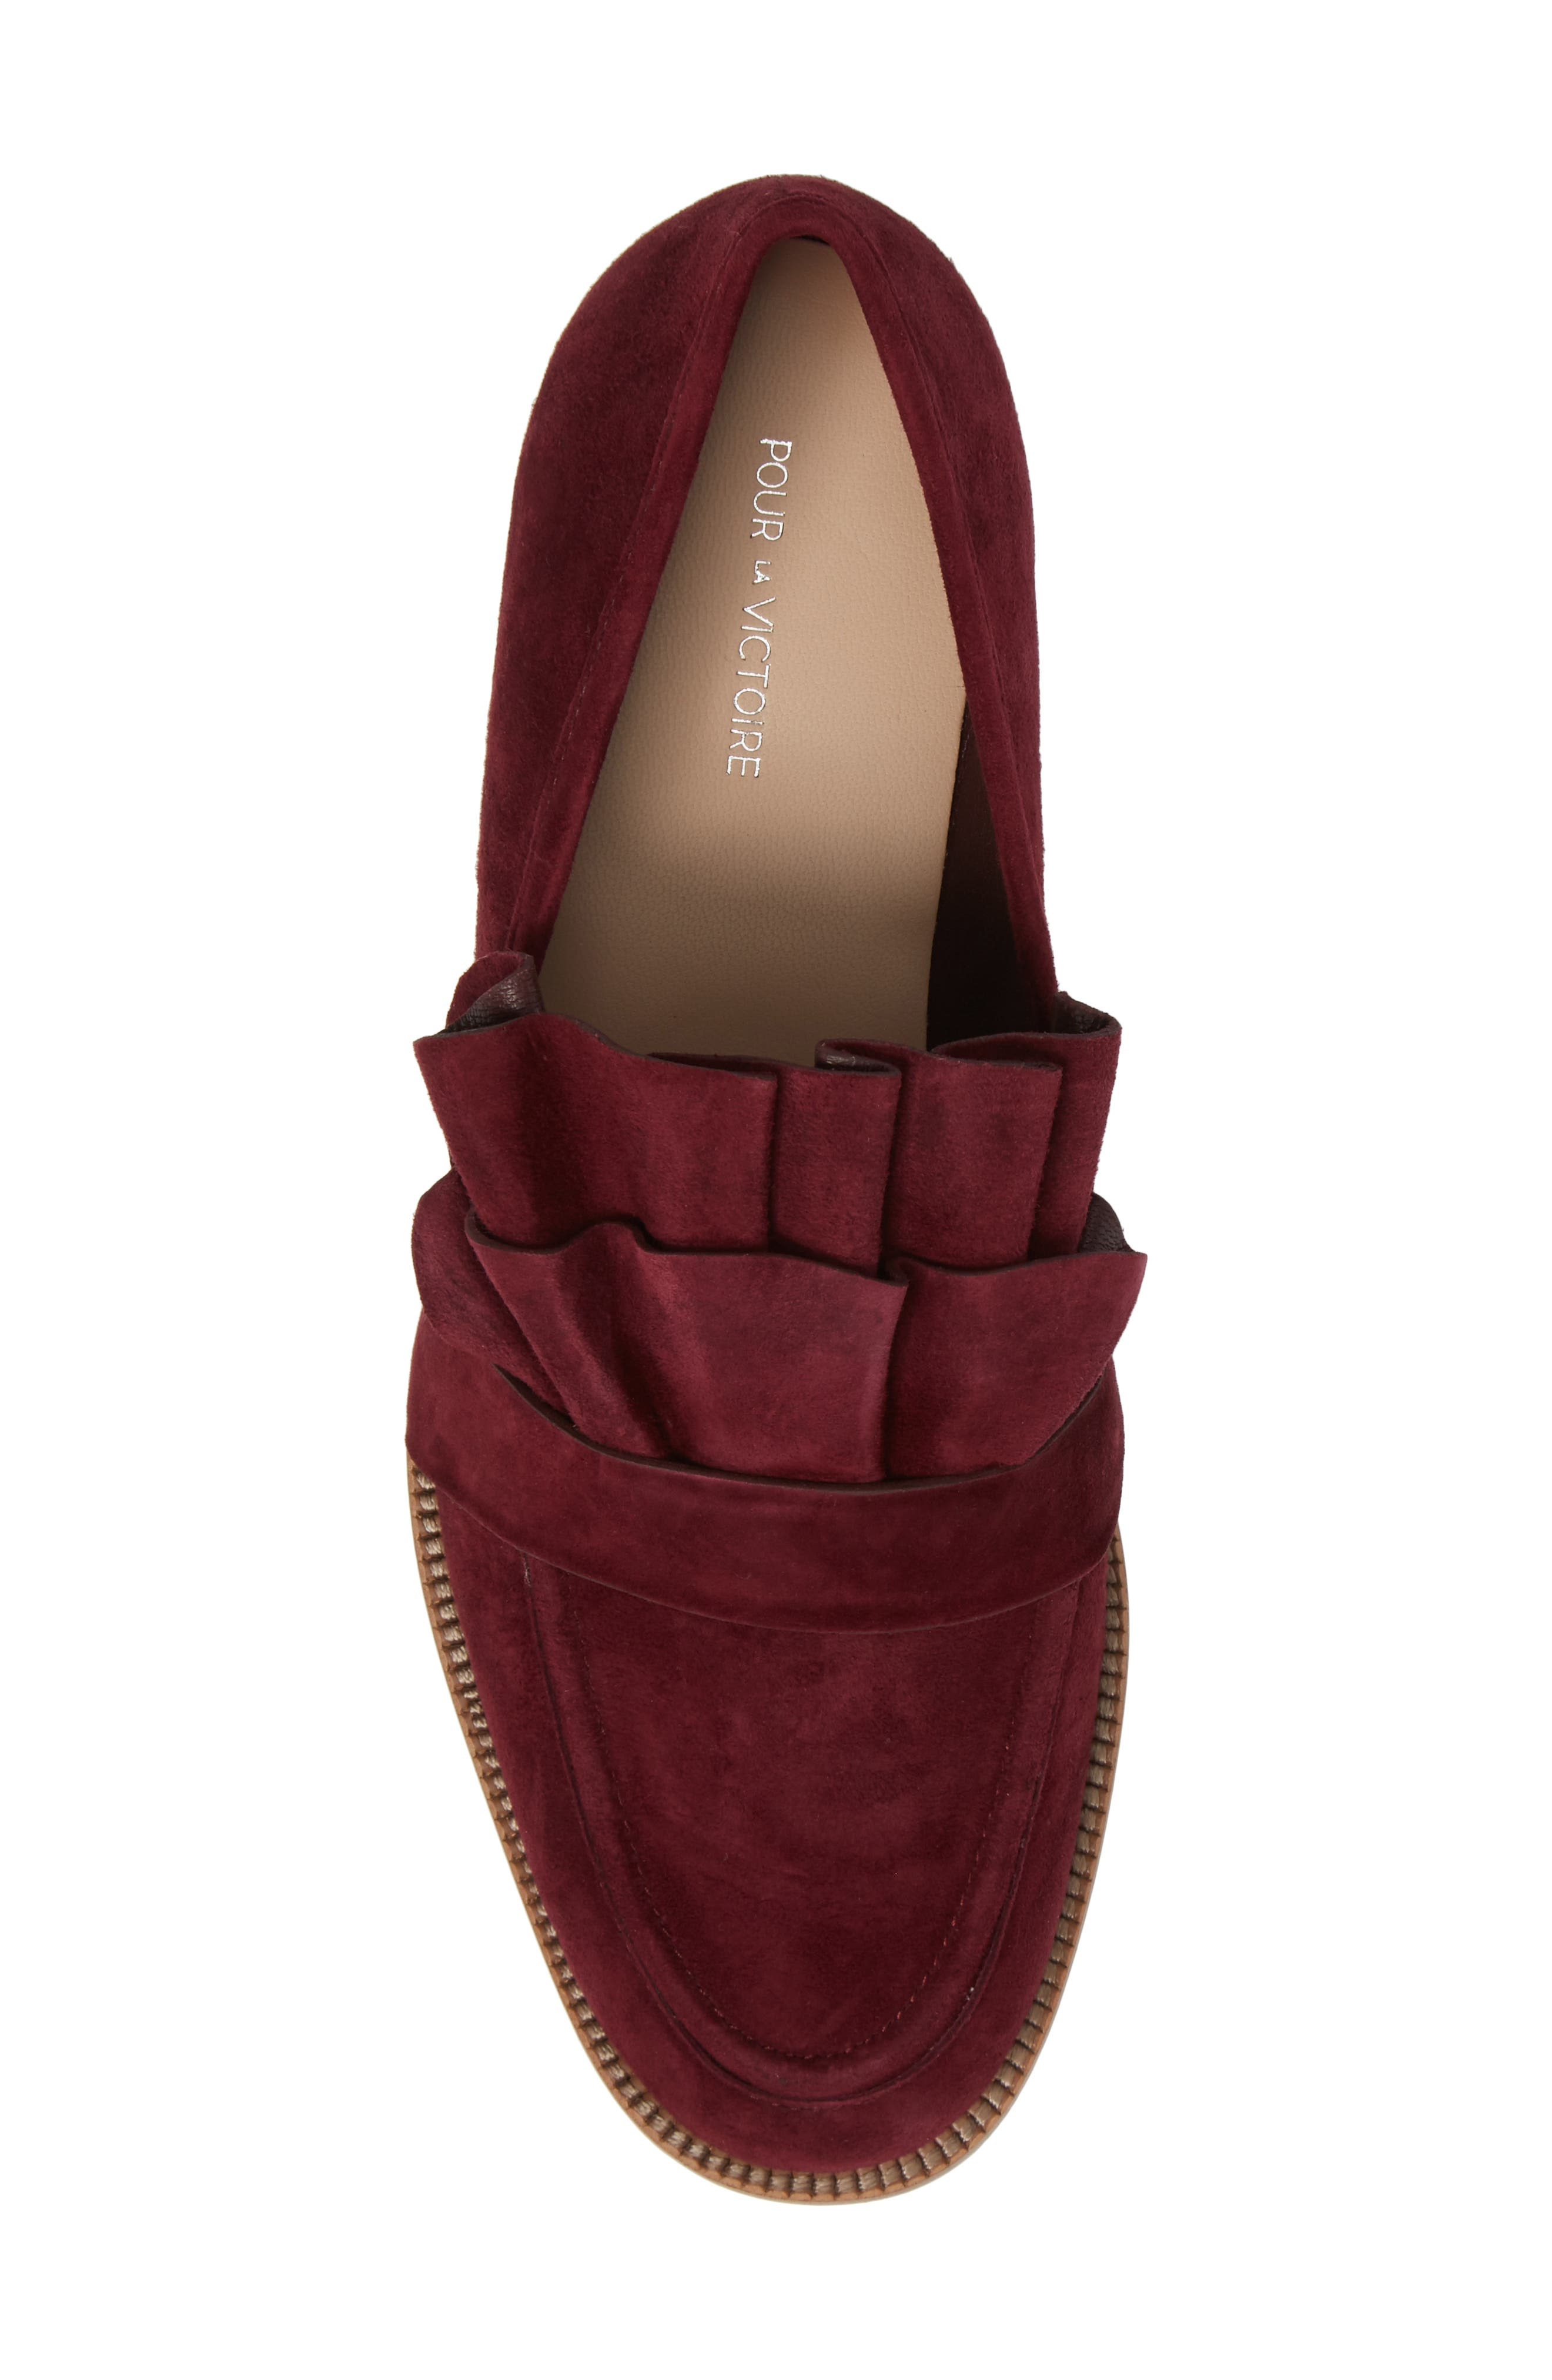 Tenley Ruffled Loafer,                             Alternate thumbnail 5, color,                             Merlot Suede